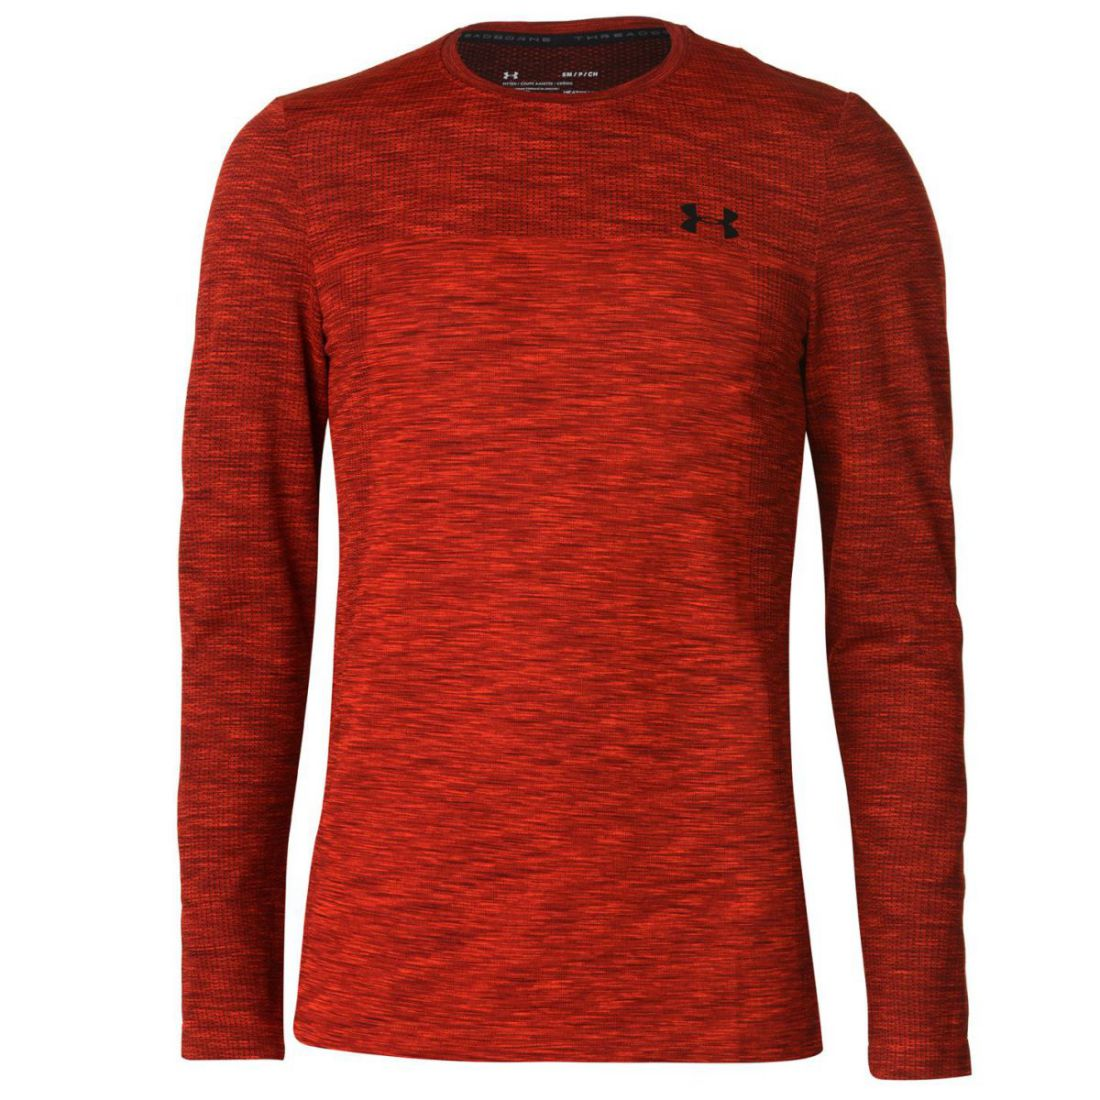 f2f67bae7 Details about Under Armour Mens Vanish Seamless Long Sleeve T Shirt  Performance Top Crew Neck